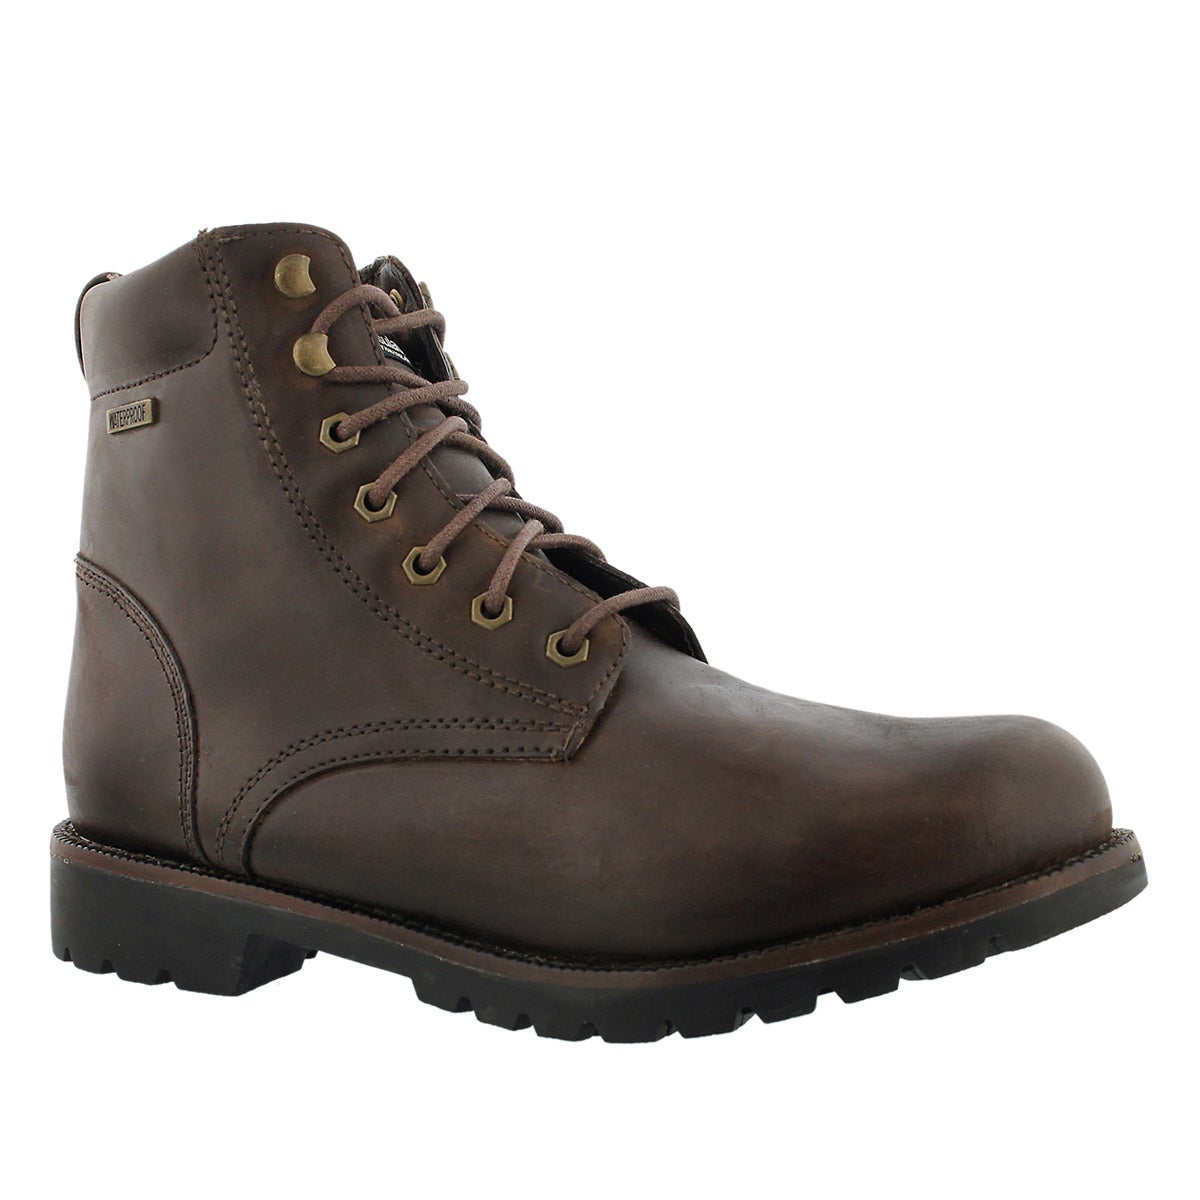 Men's MADDUX brown waterproof lace-up winter boots